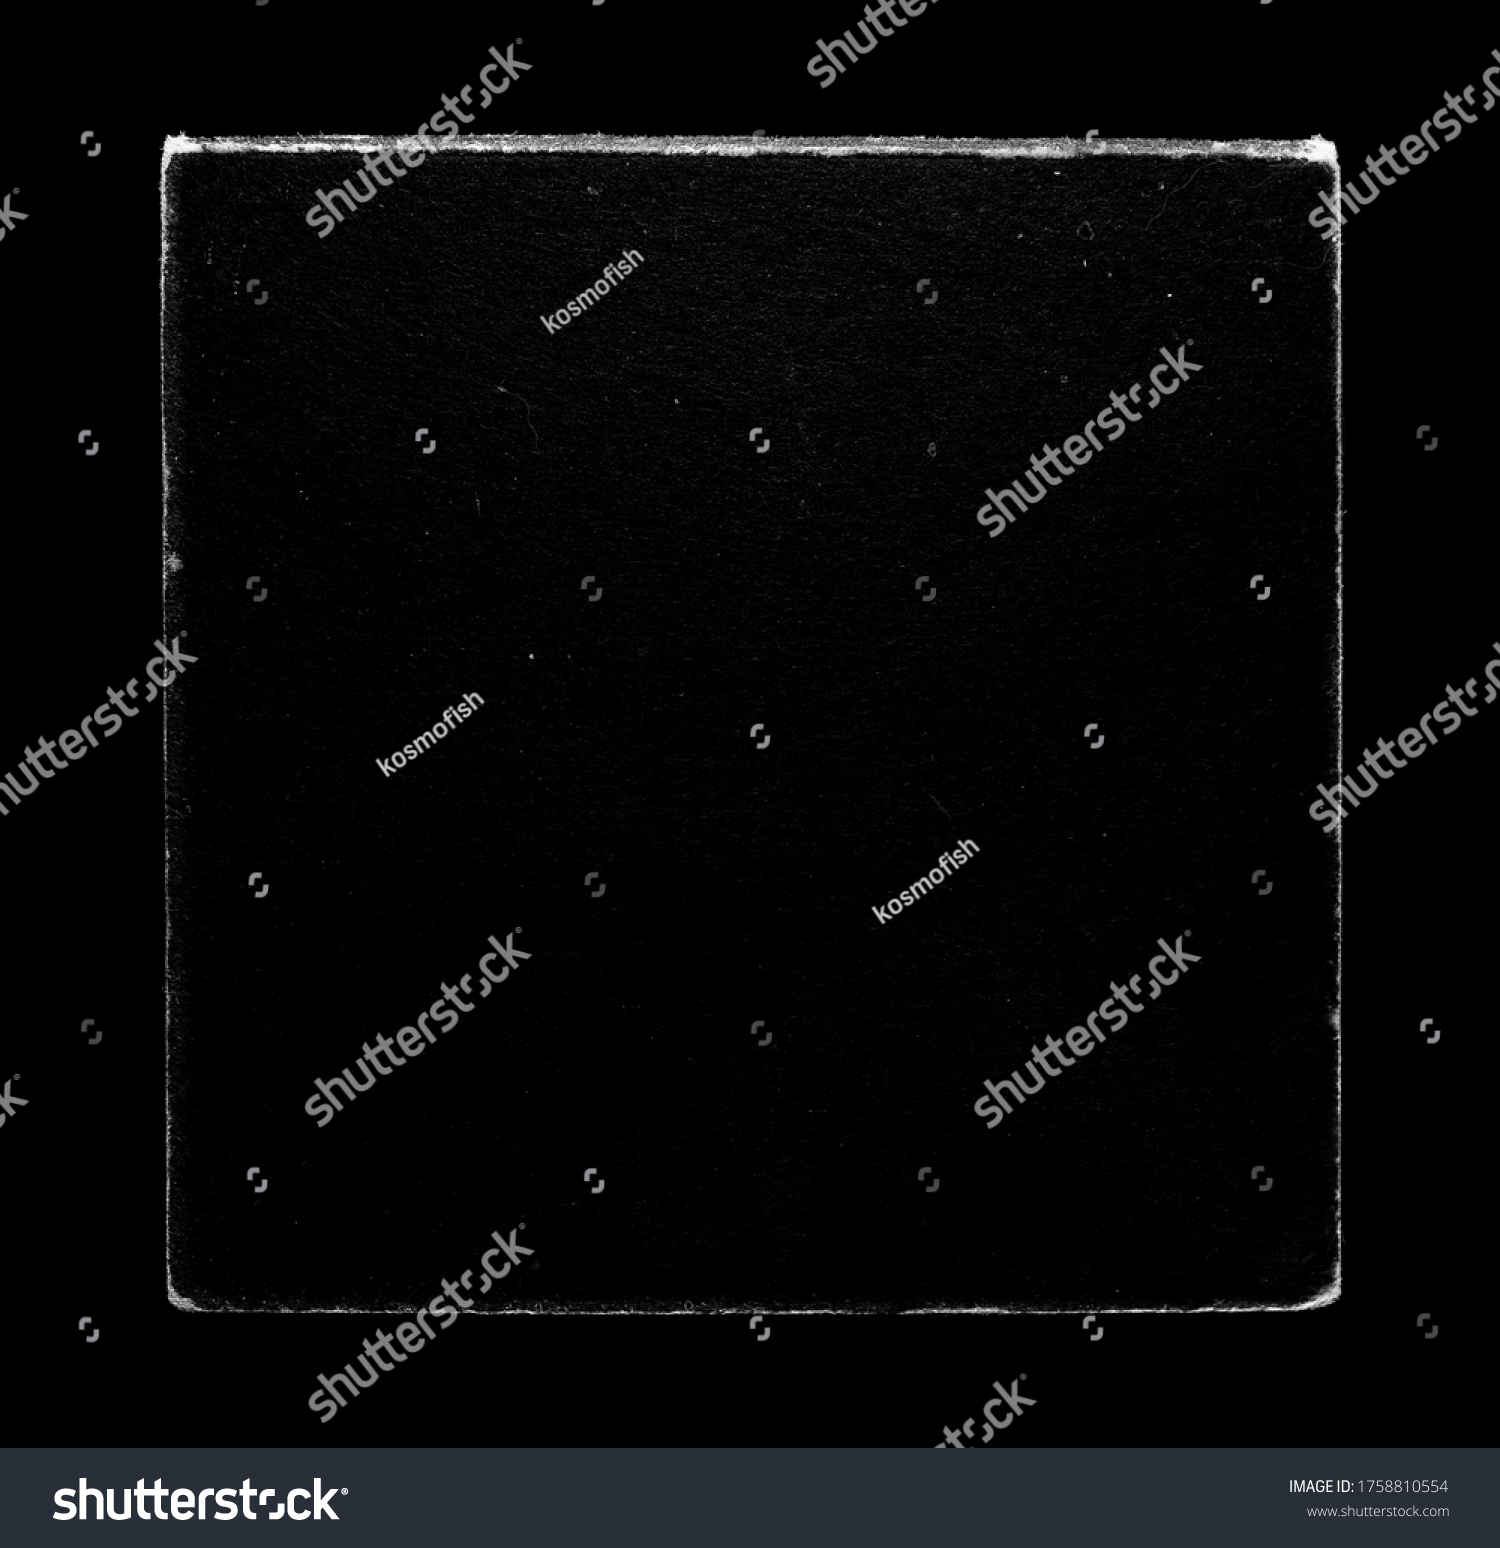 Old Vinyl CD Record Cover Package Envelope Template Mock Up. Black Scratched Shabby Paper Cardboard Square Texture.  #1758810554